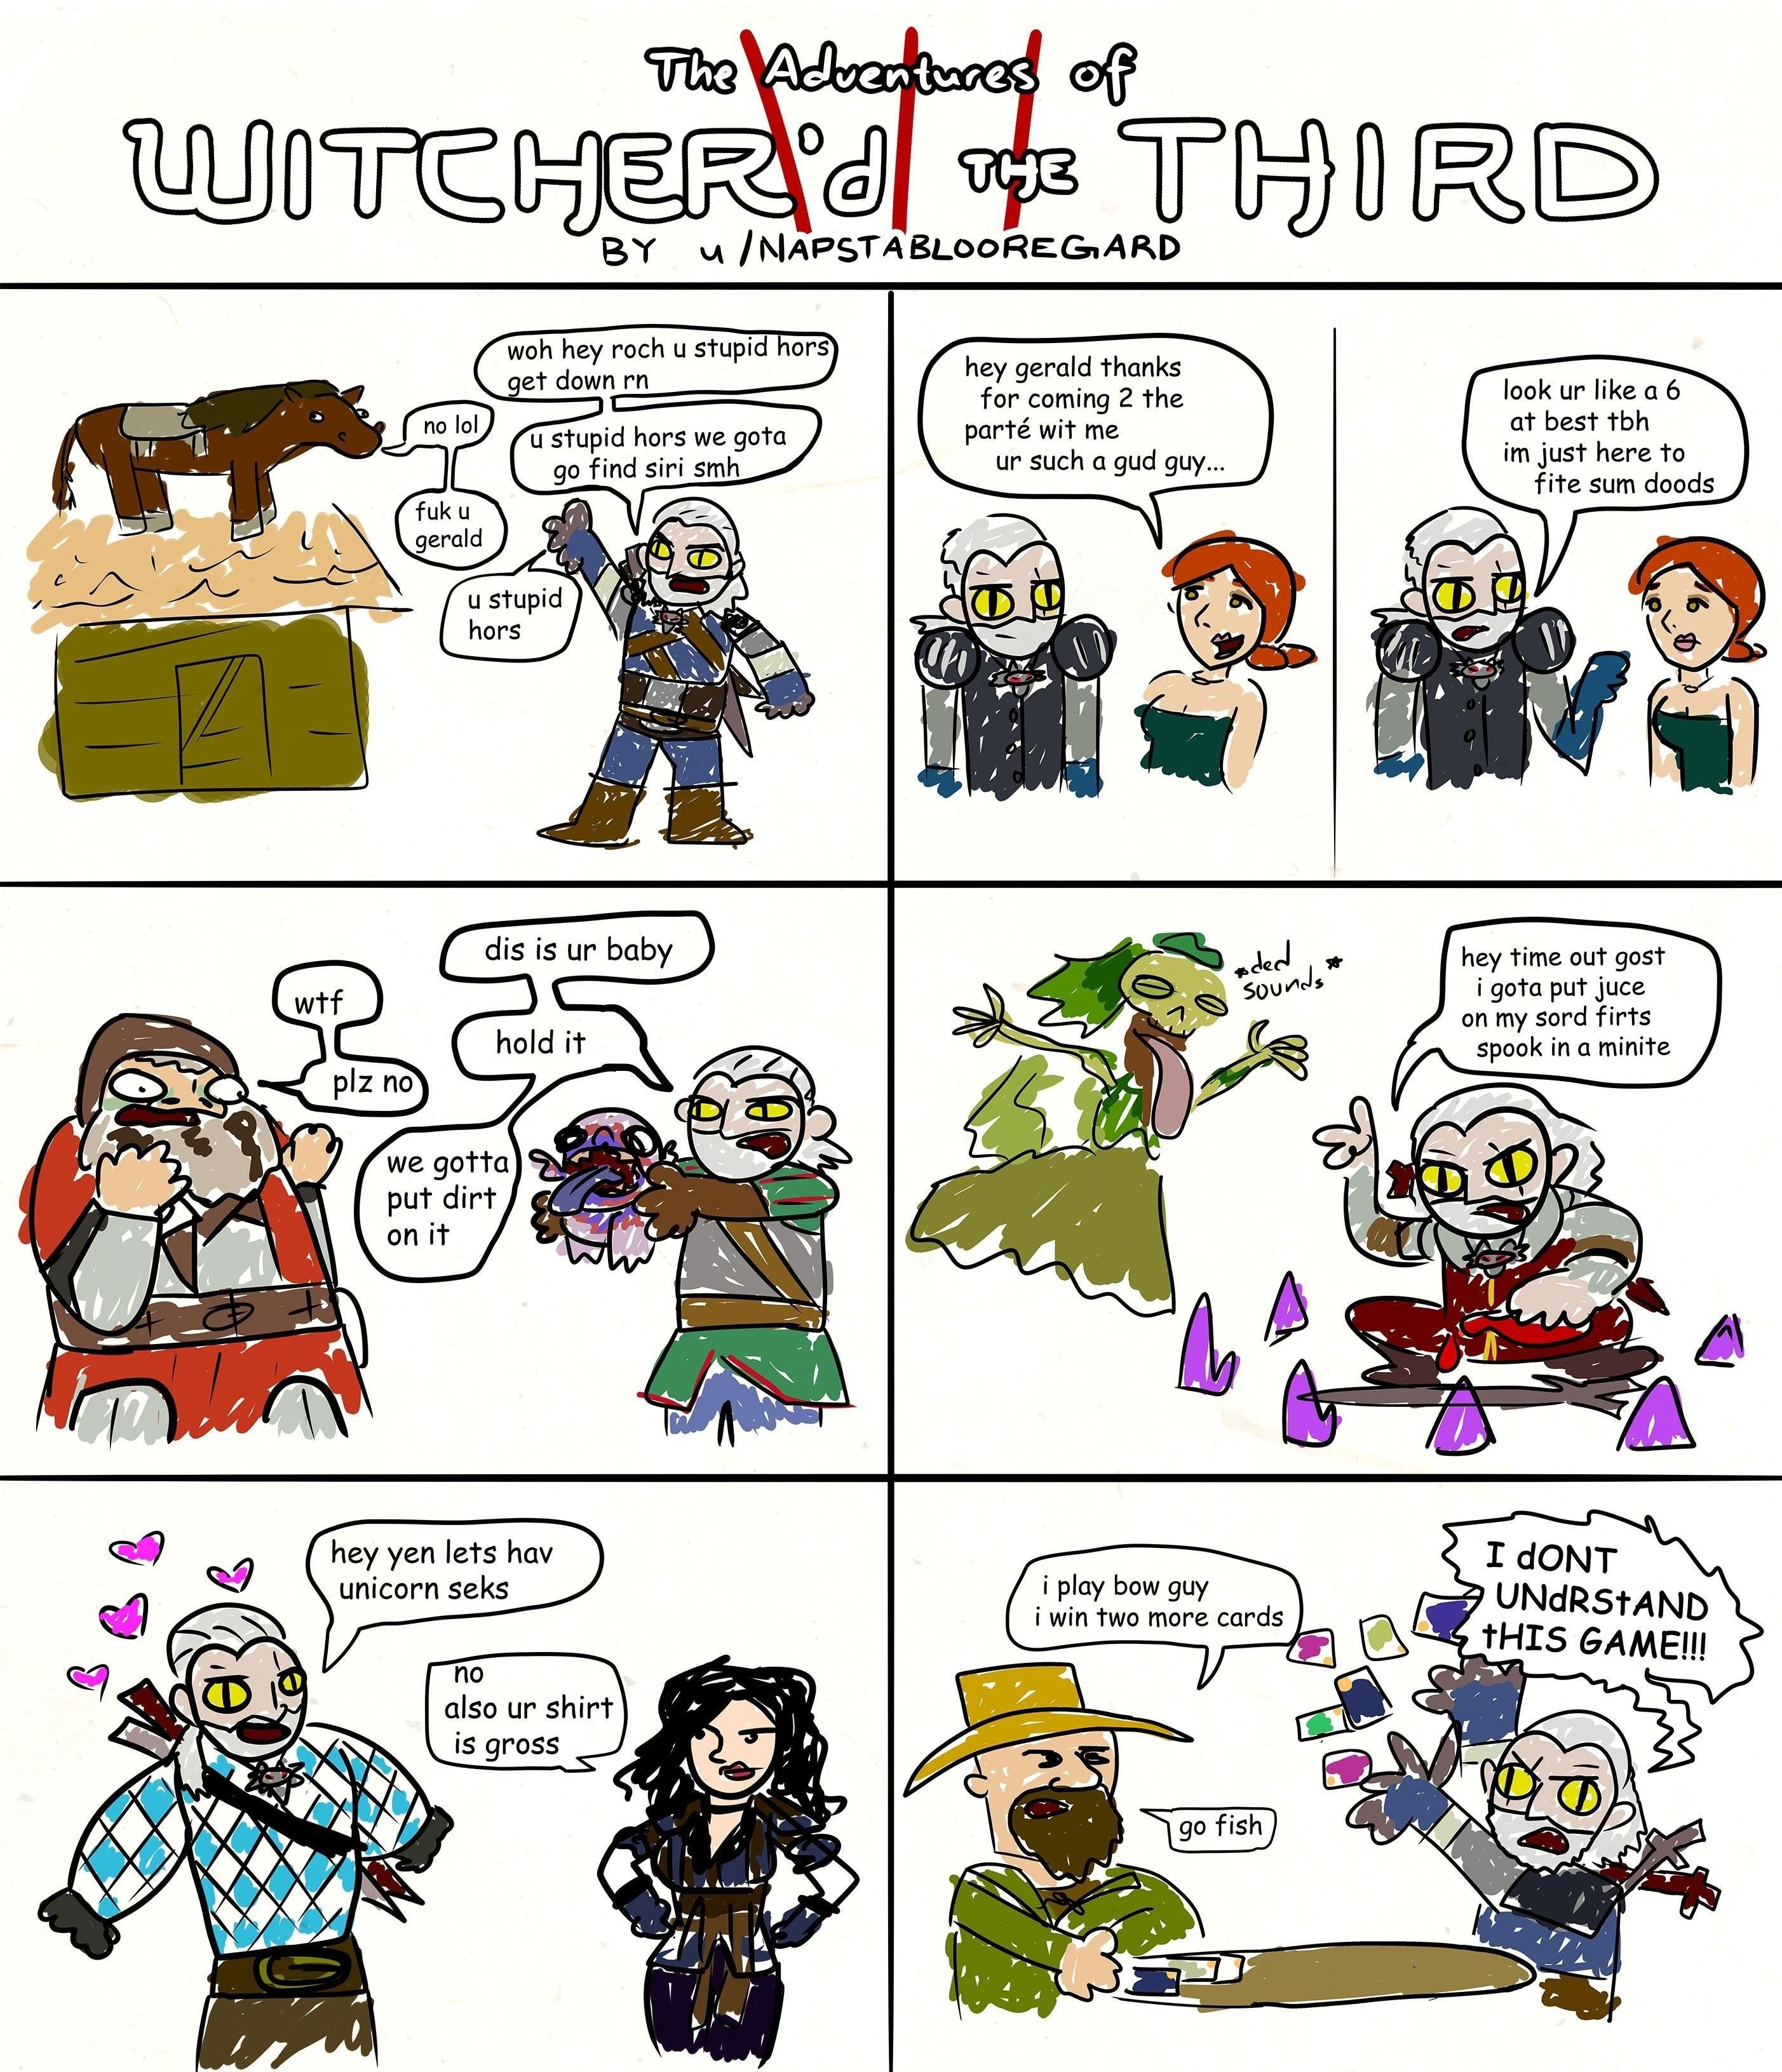 OC] I made some crappy Witcher 3 comics  [x-post r/gaming